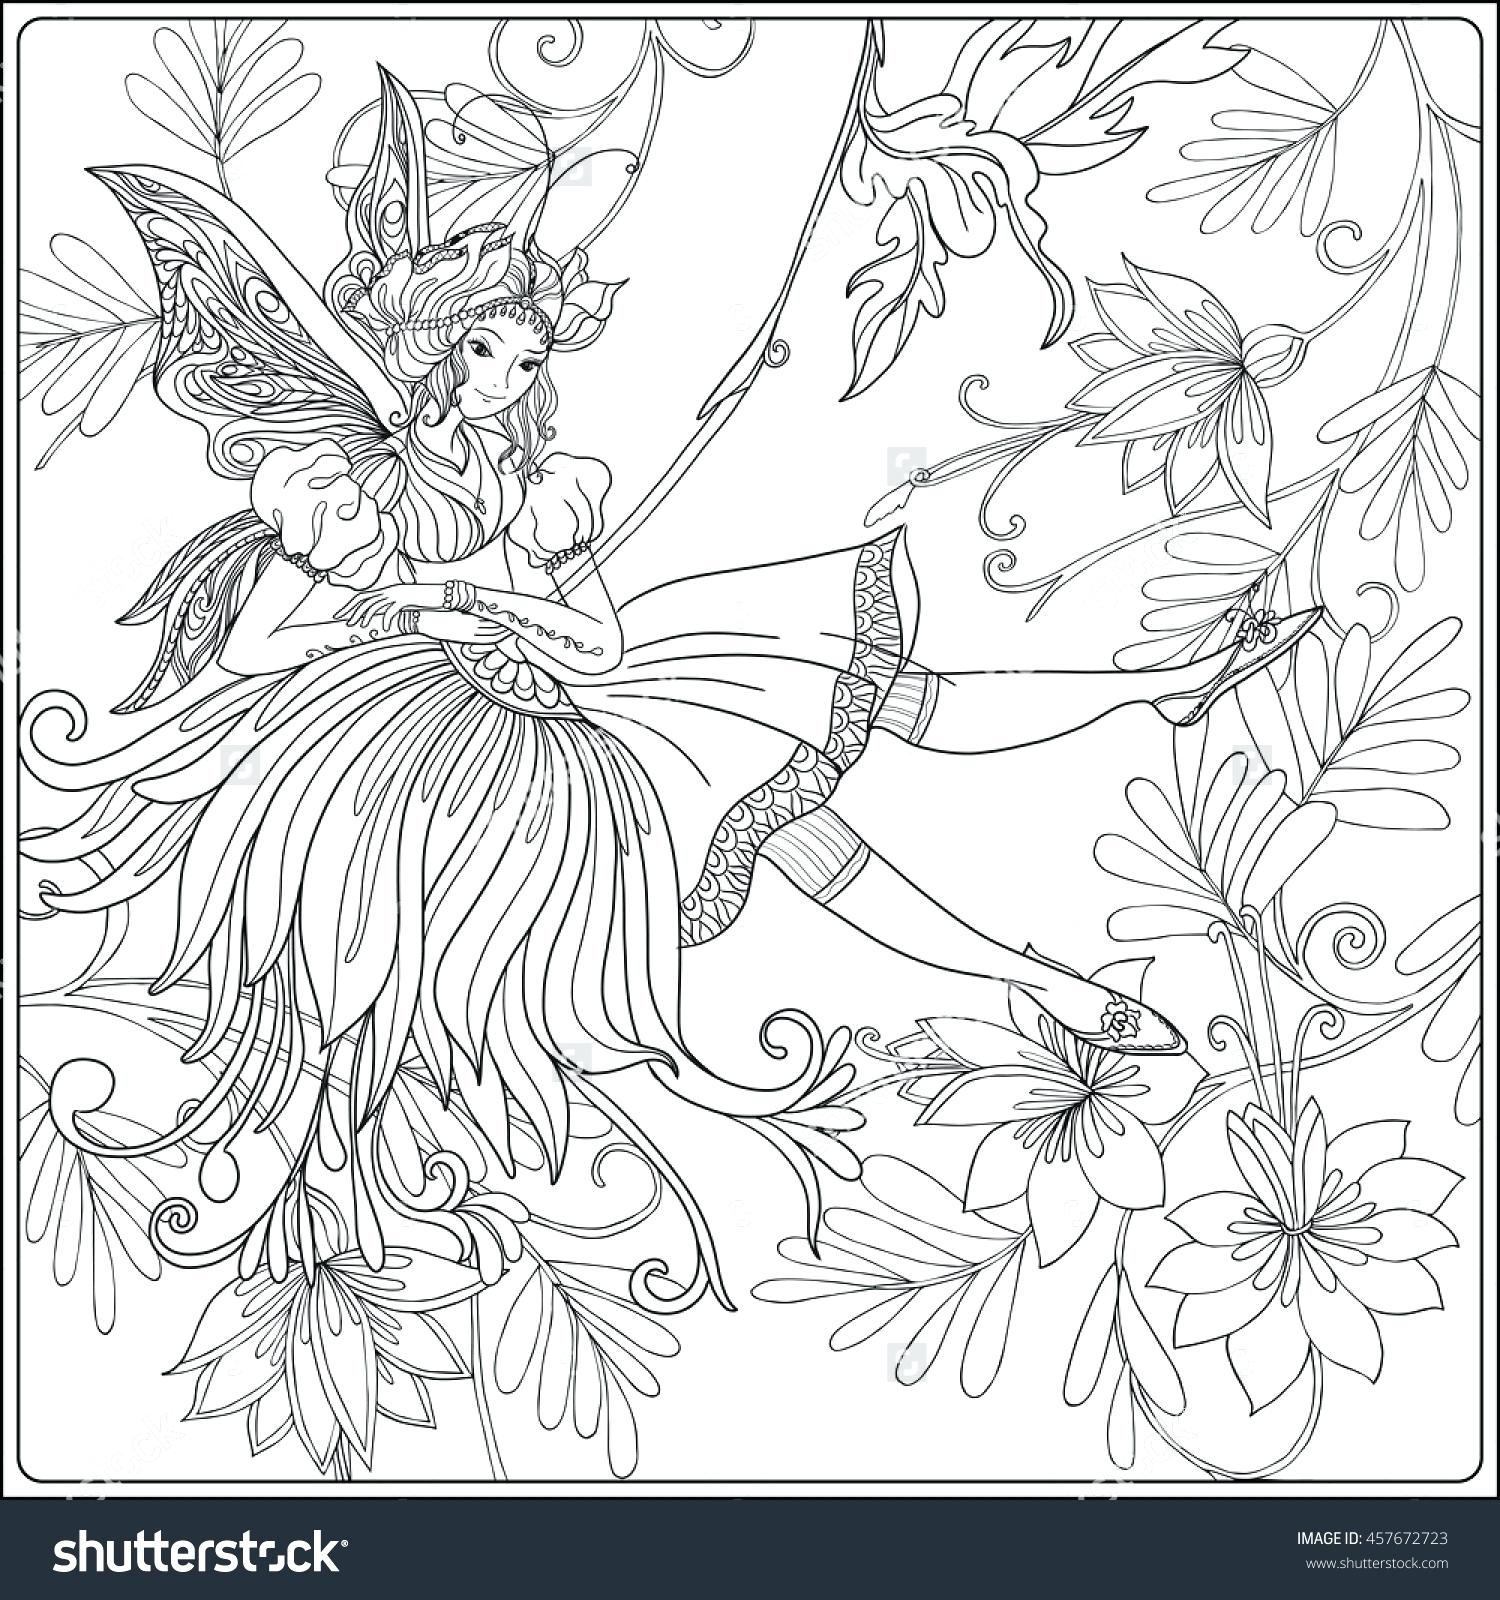 1500x1600 Coloring Drawings For Coloring Fairy With Butterfly Wings